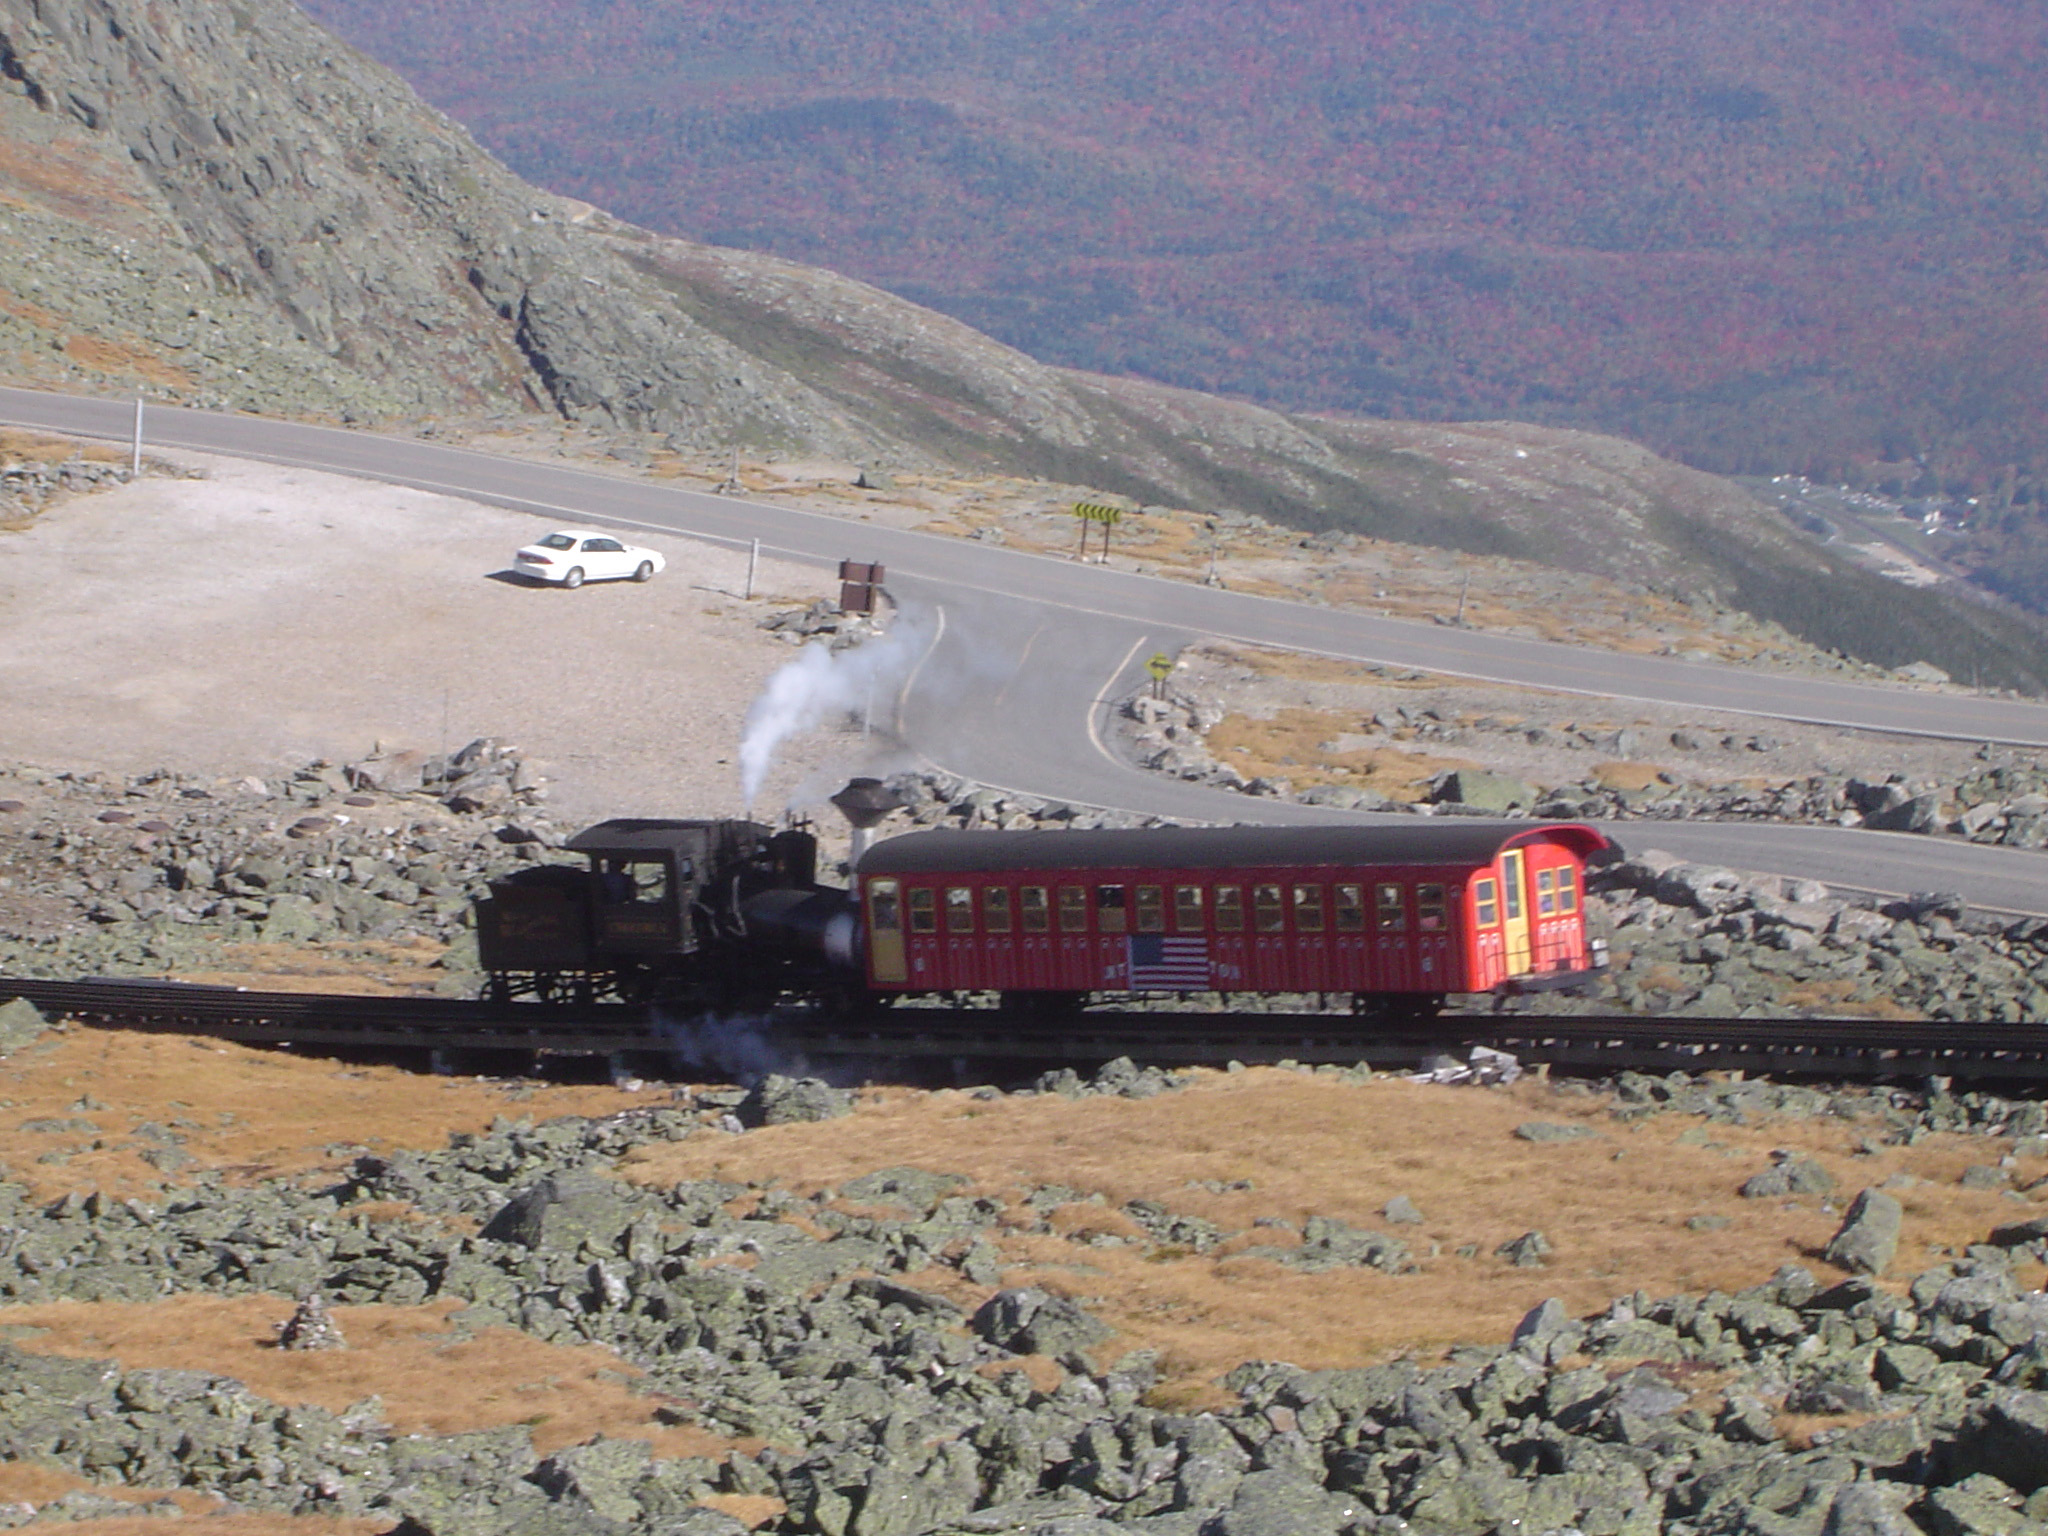 Mount Washington Cog Railway steam train negotiating a steep incline above a parking lot, USA